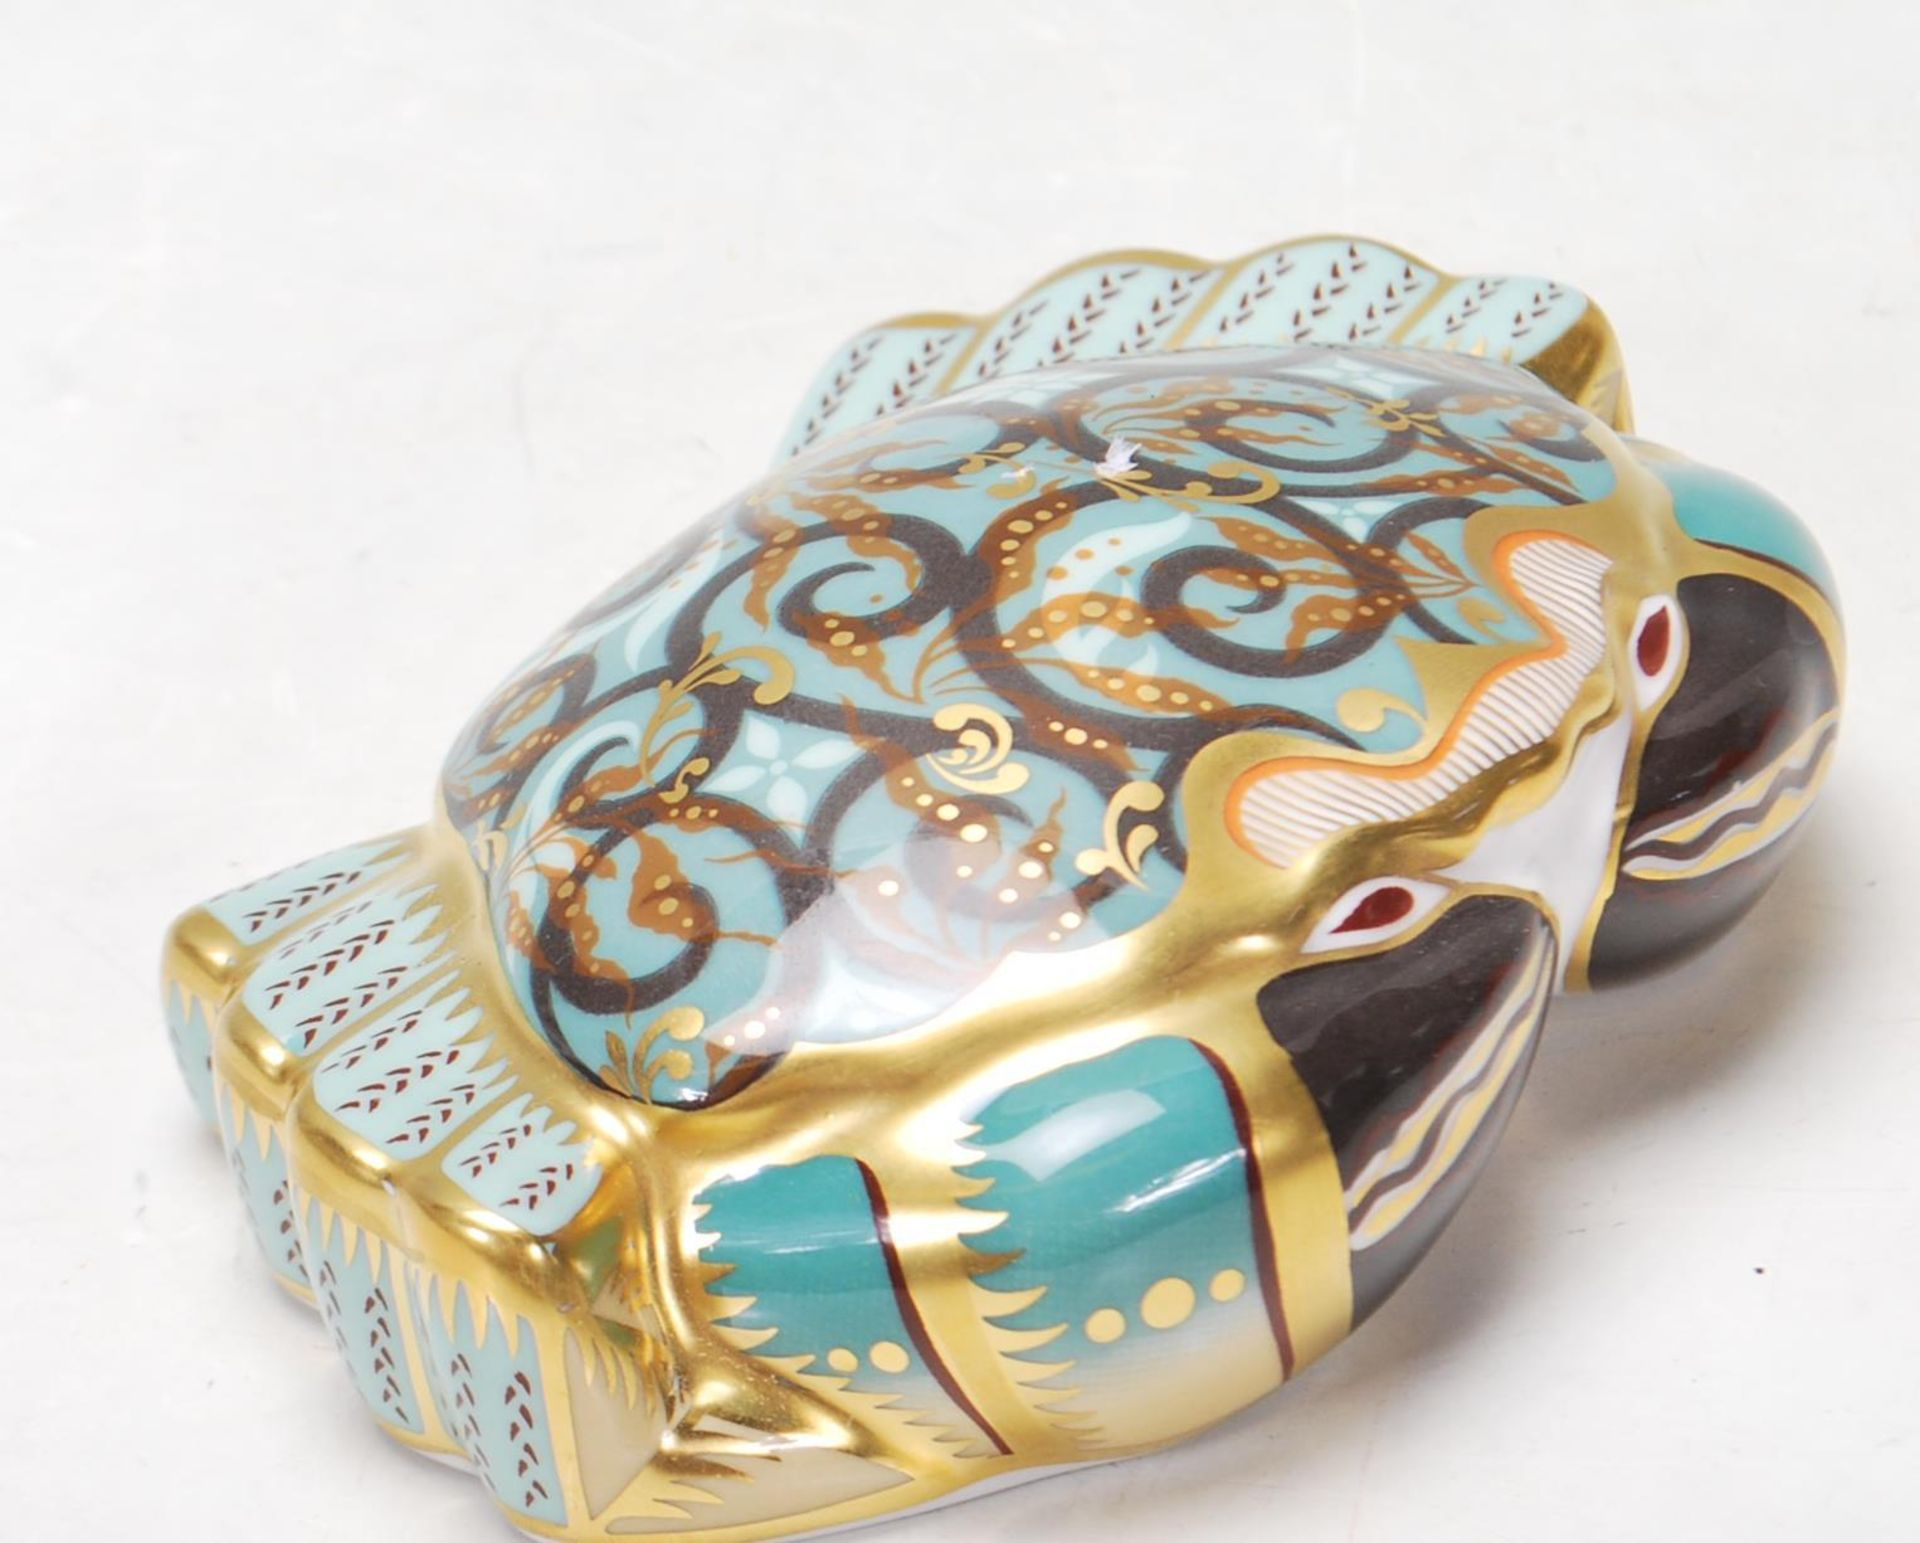 ROYAL CROWN DERBY PAPERWEIGHT IN A FORM OF A CROMER CRAB WITH GOLD STOPPER - Image 3 of 6